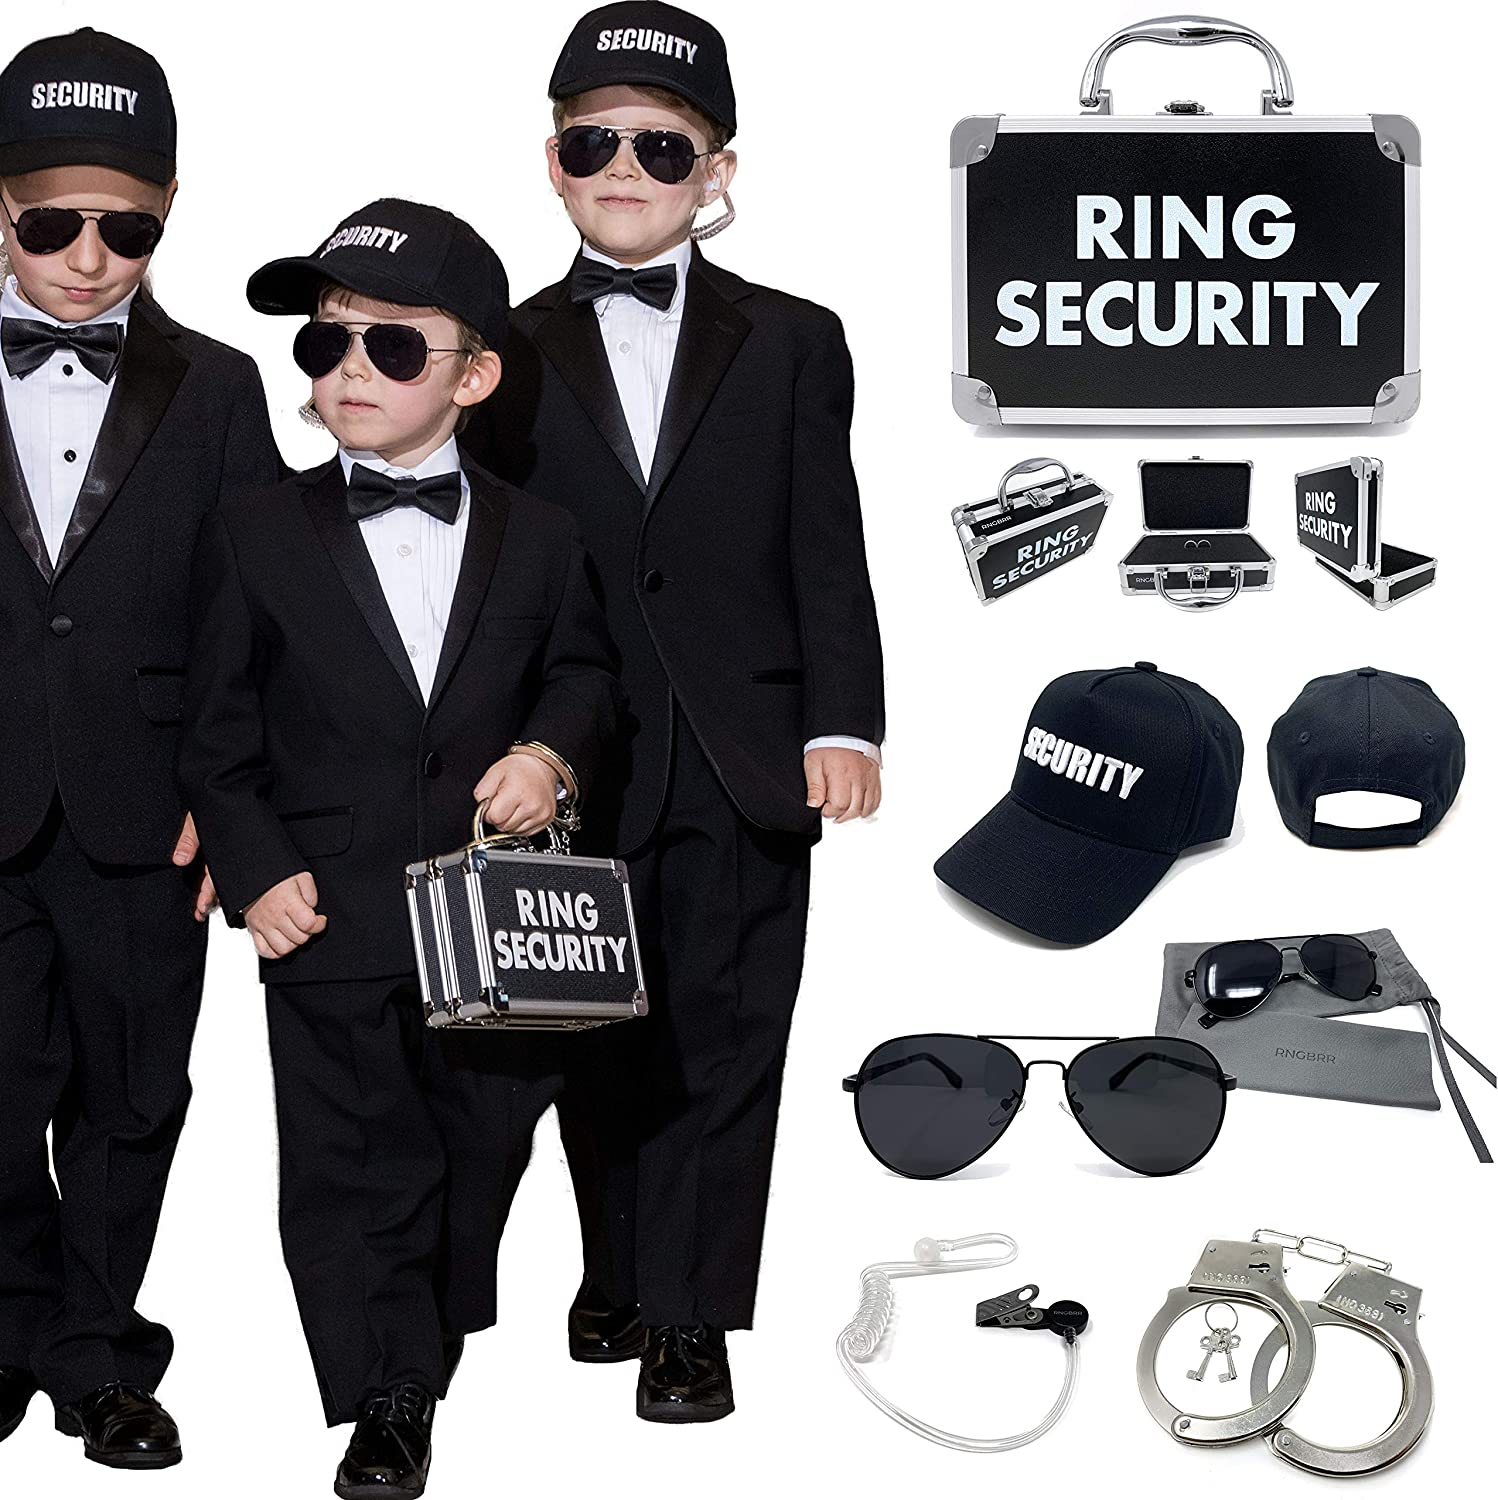 RNGBRR Security Handcuffs for Ring Bearer